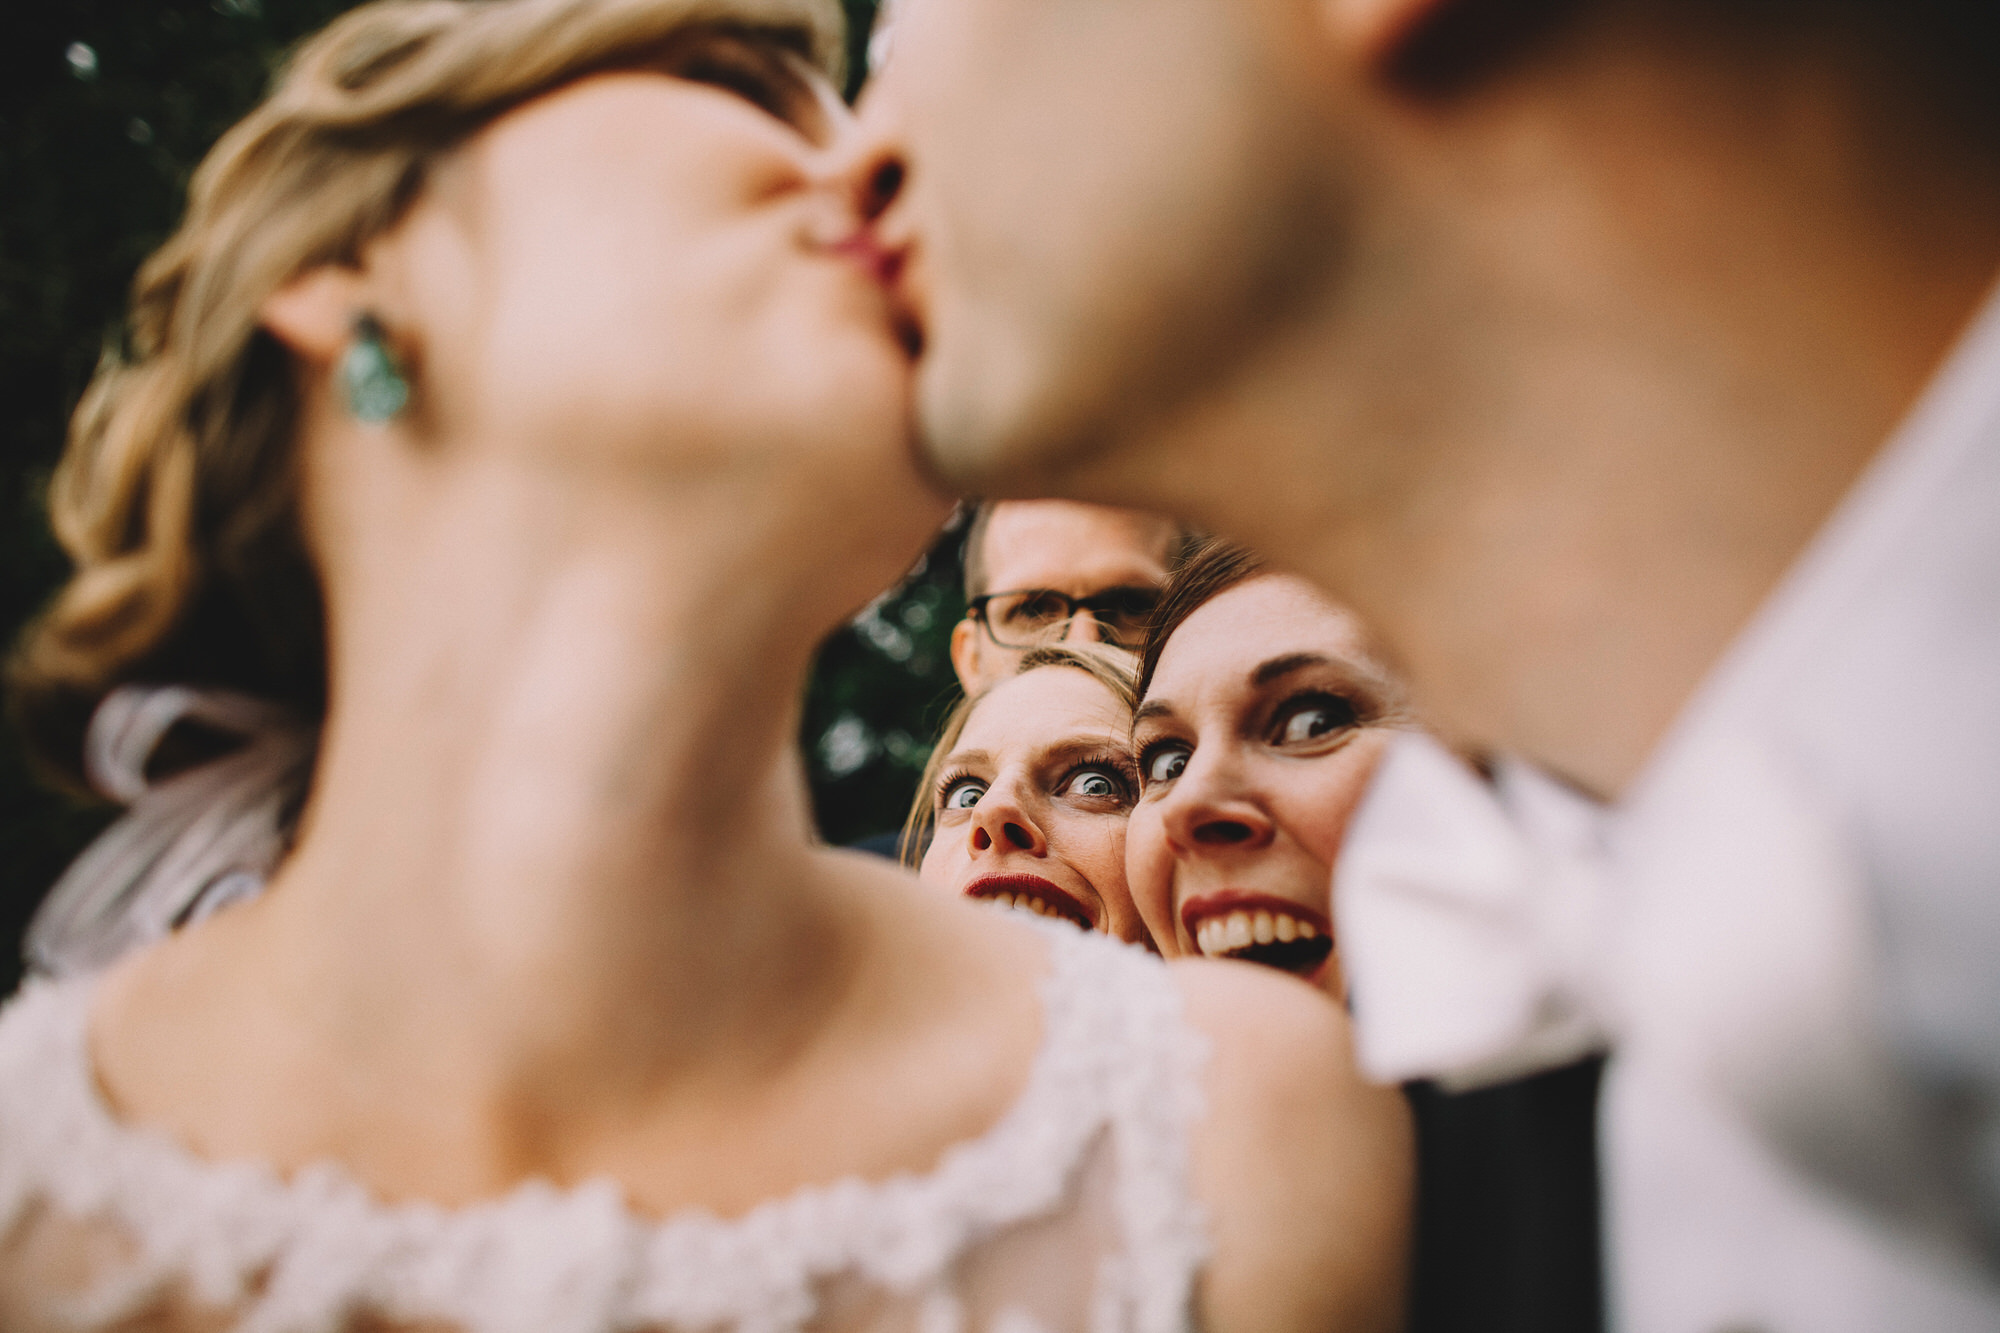 creative-composition-of-bride-and-groom-kissing-with-friends-watching-by-ken-pak-washington-dc-photographer